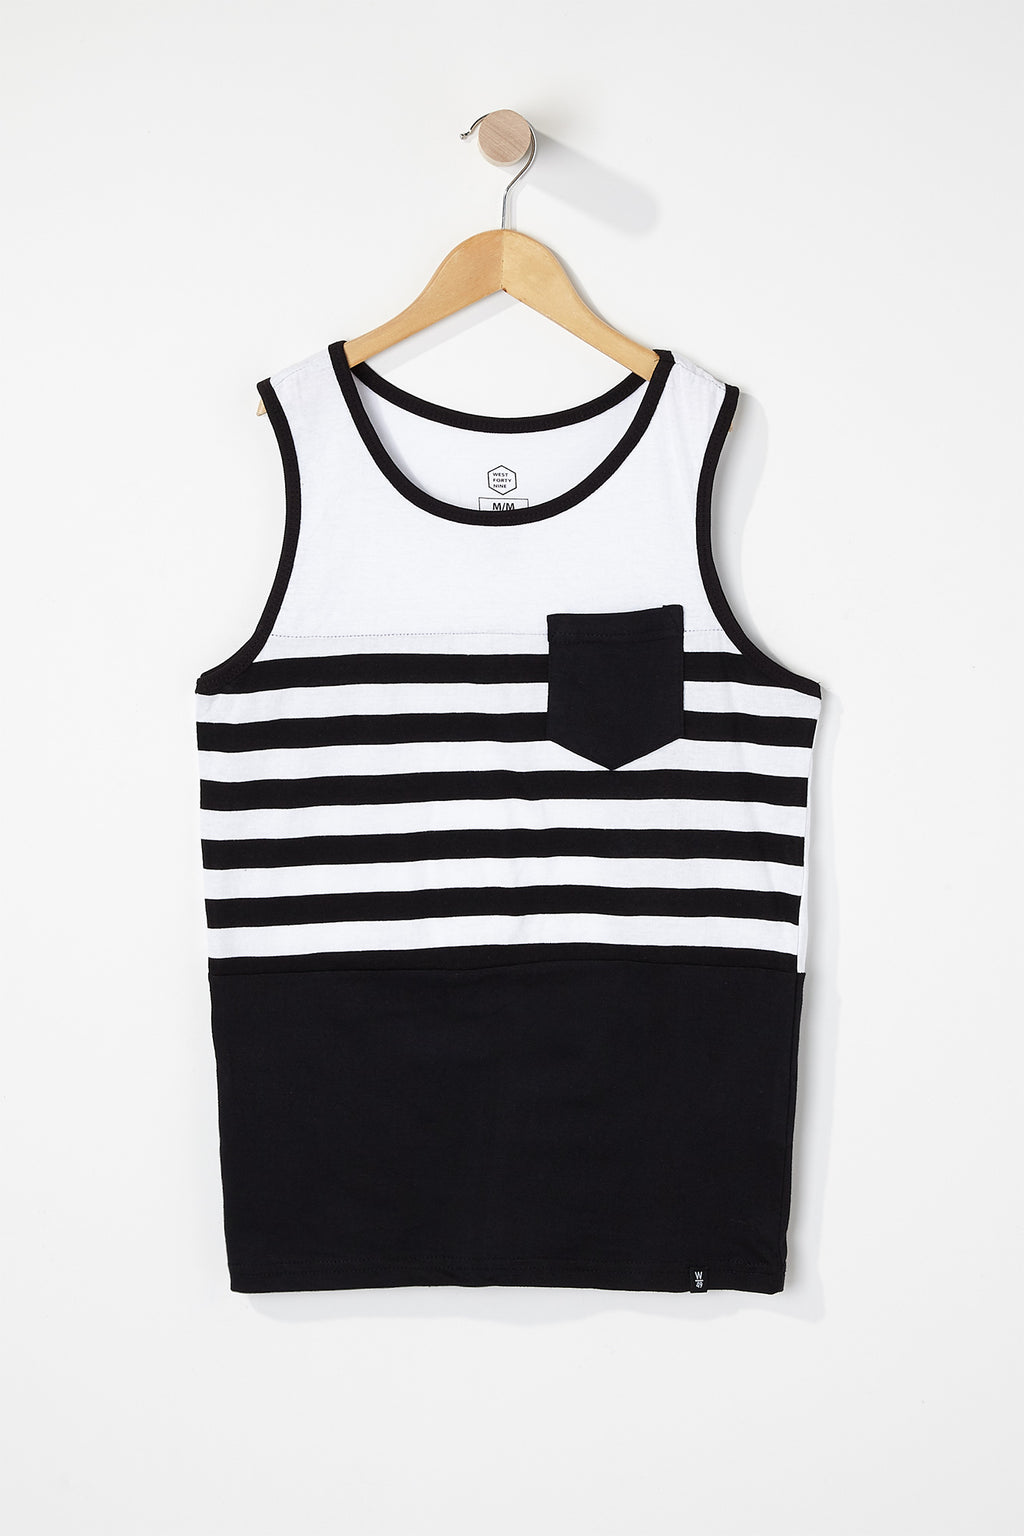 West49 Boys Striped Tank Top